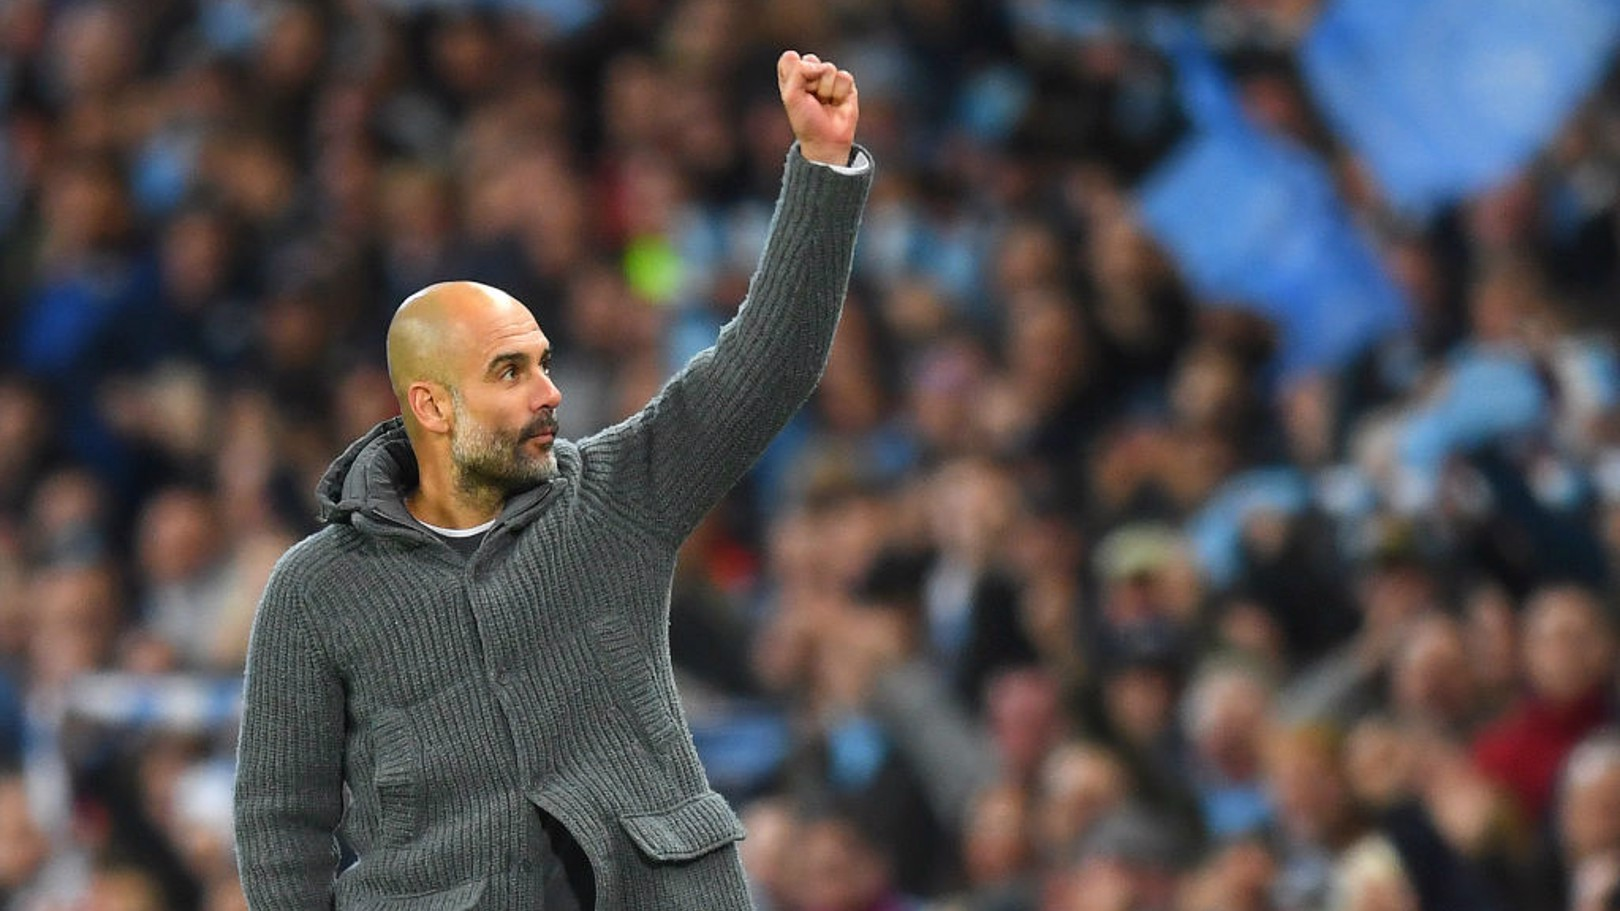 SALUTES: Pep Guardiola acknowledges the Etihad Stadium crowd.